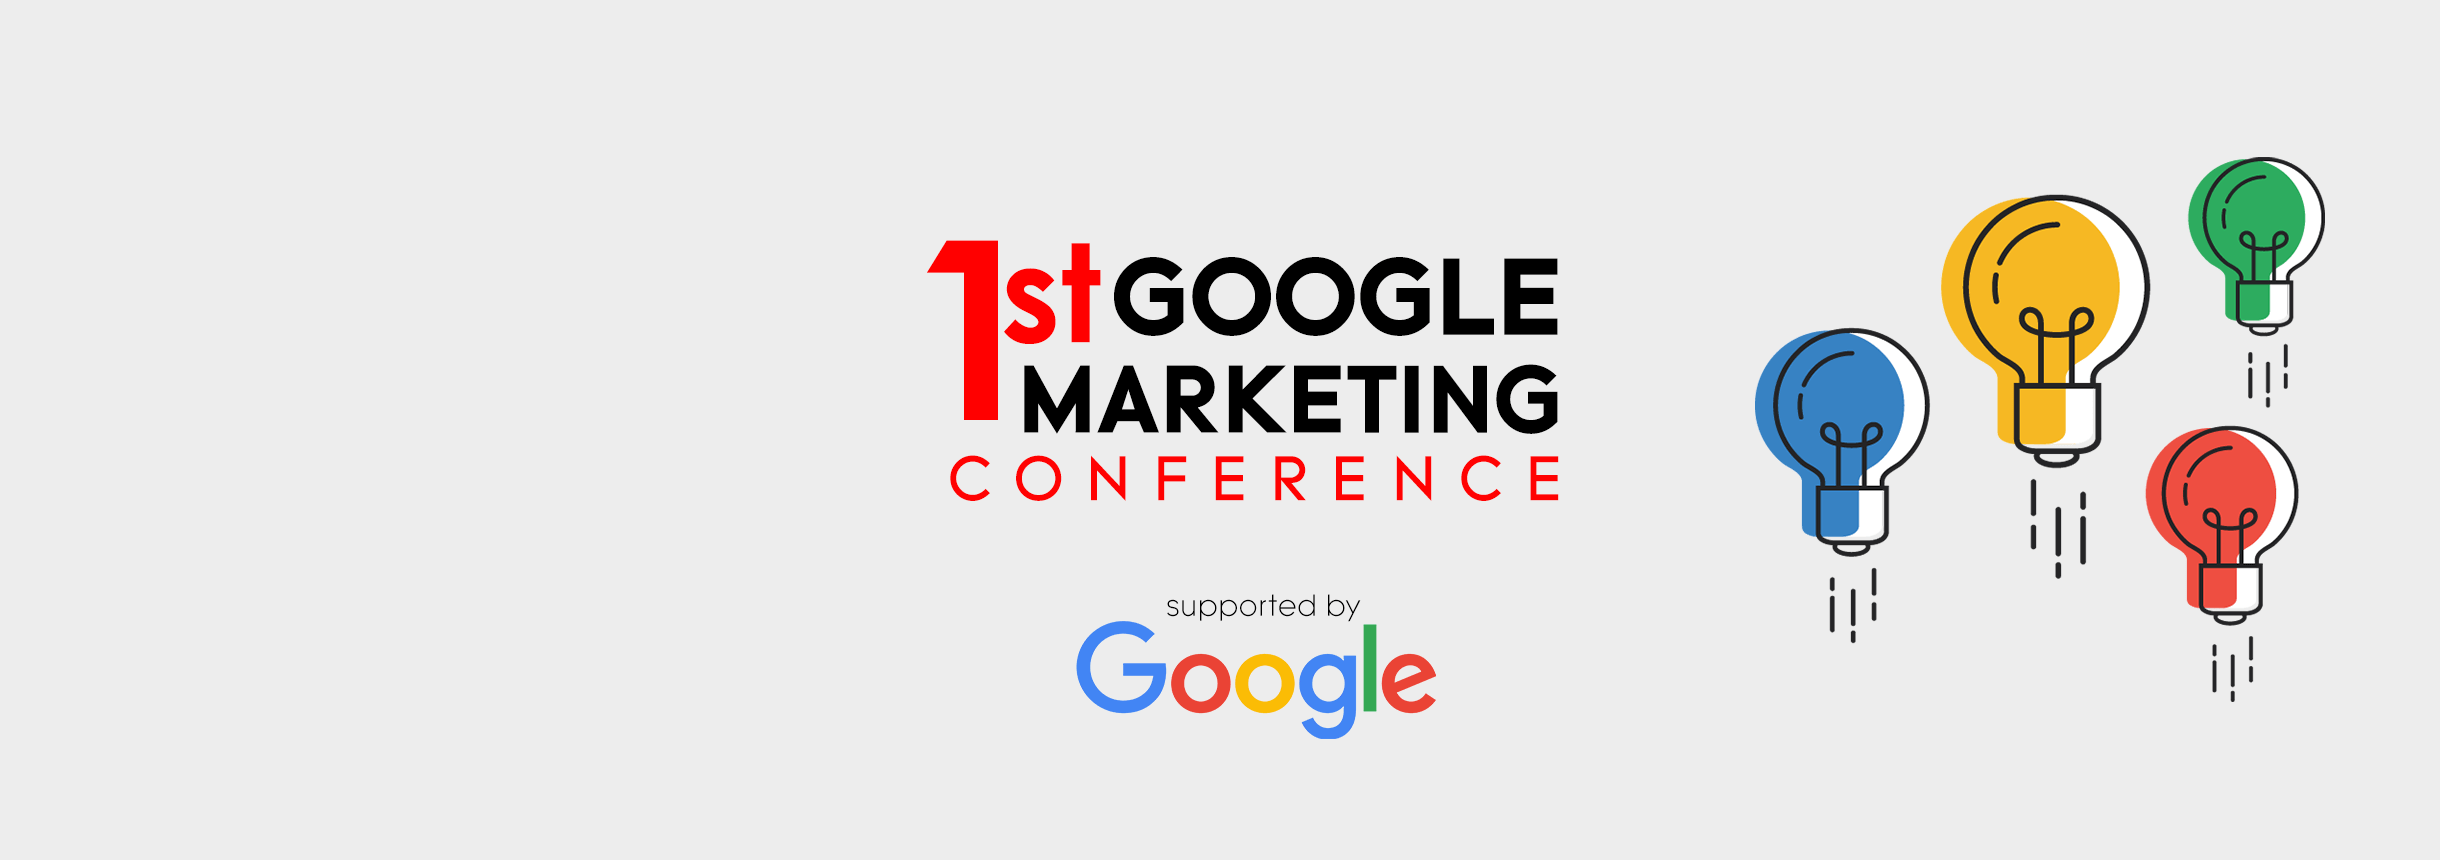 google marketing conference 2018